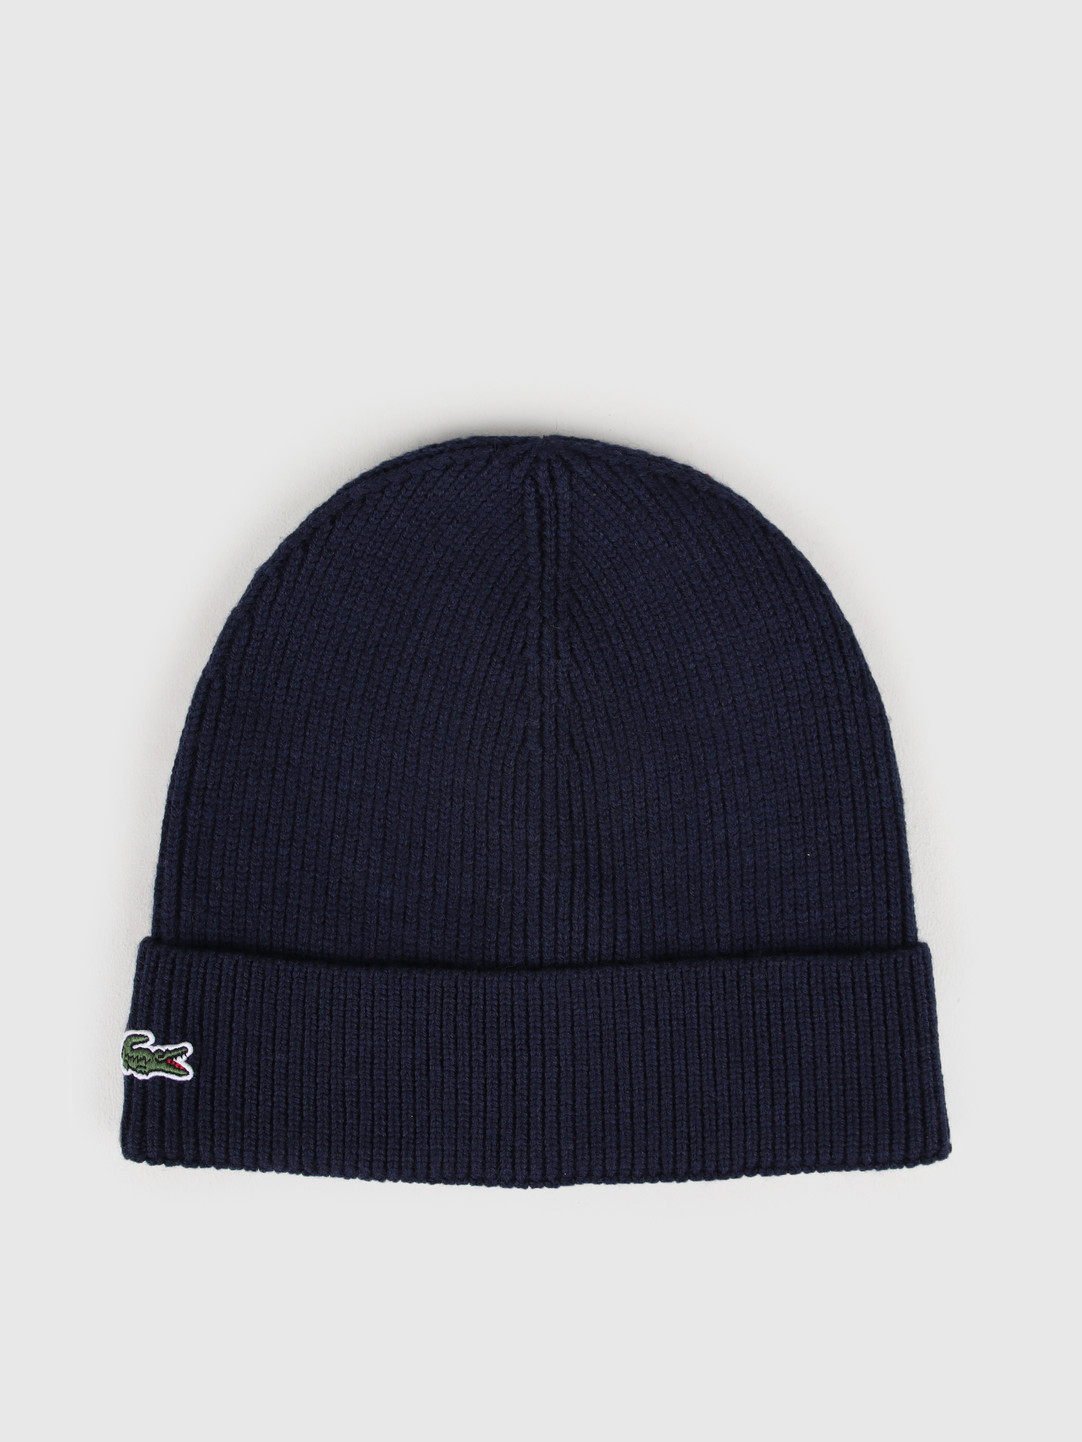 Lacoste Lacoste 2G4B Knitted Cap 07A Marine Rb3502-83